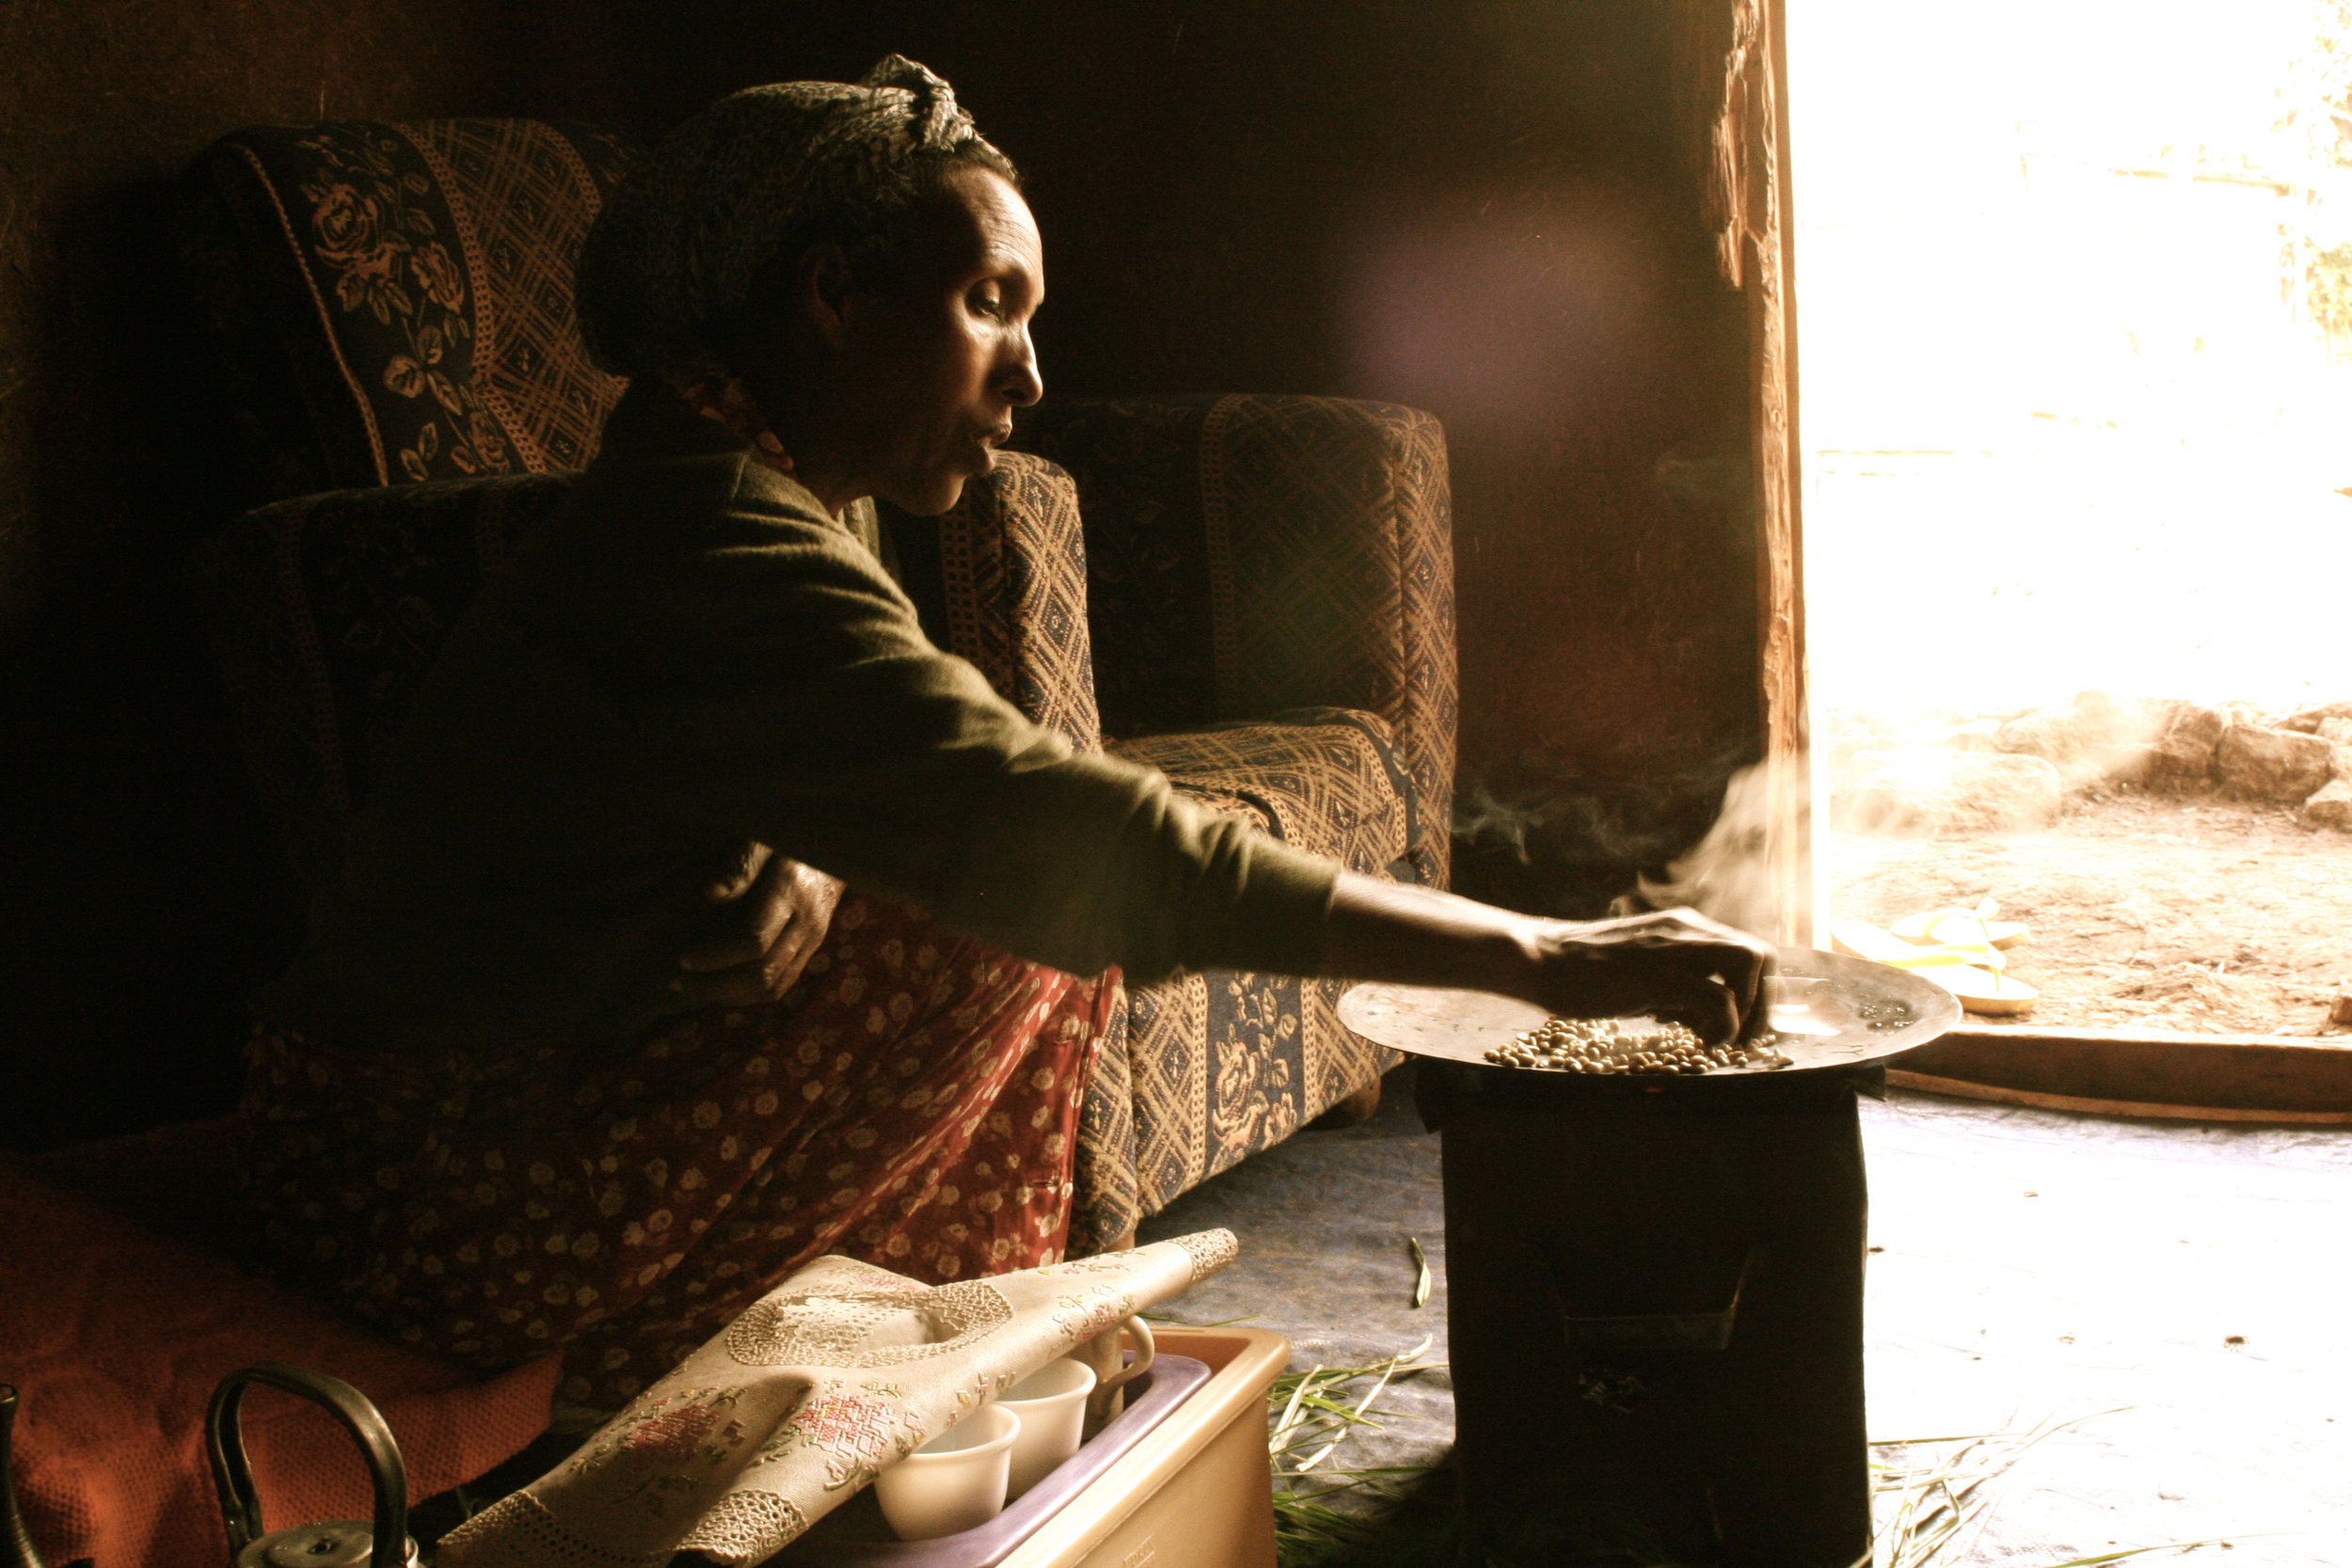 More than just a daily shot of caffeine, coffee in Ethiopia is done slowly.  Meet Etenesh who lives in Addis Ababa, Ethiopia as she roasts her coffee beans over a charcoal stove.